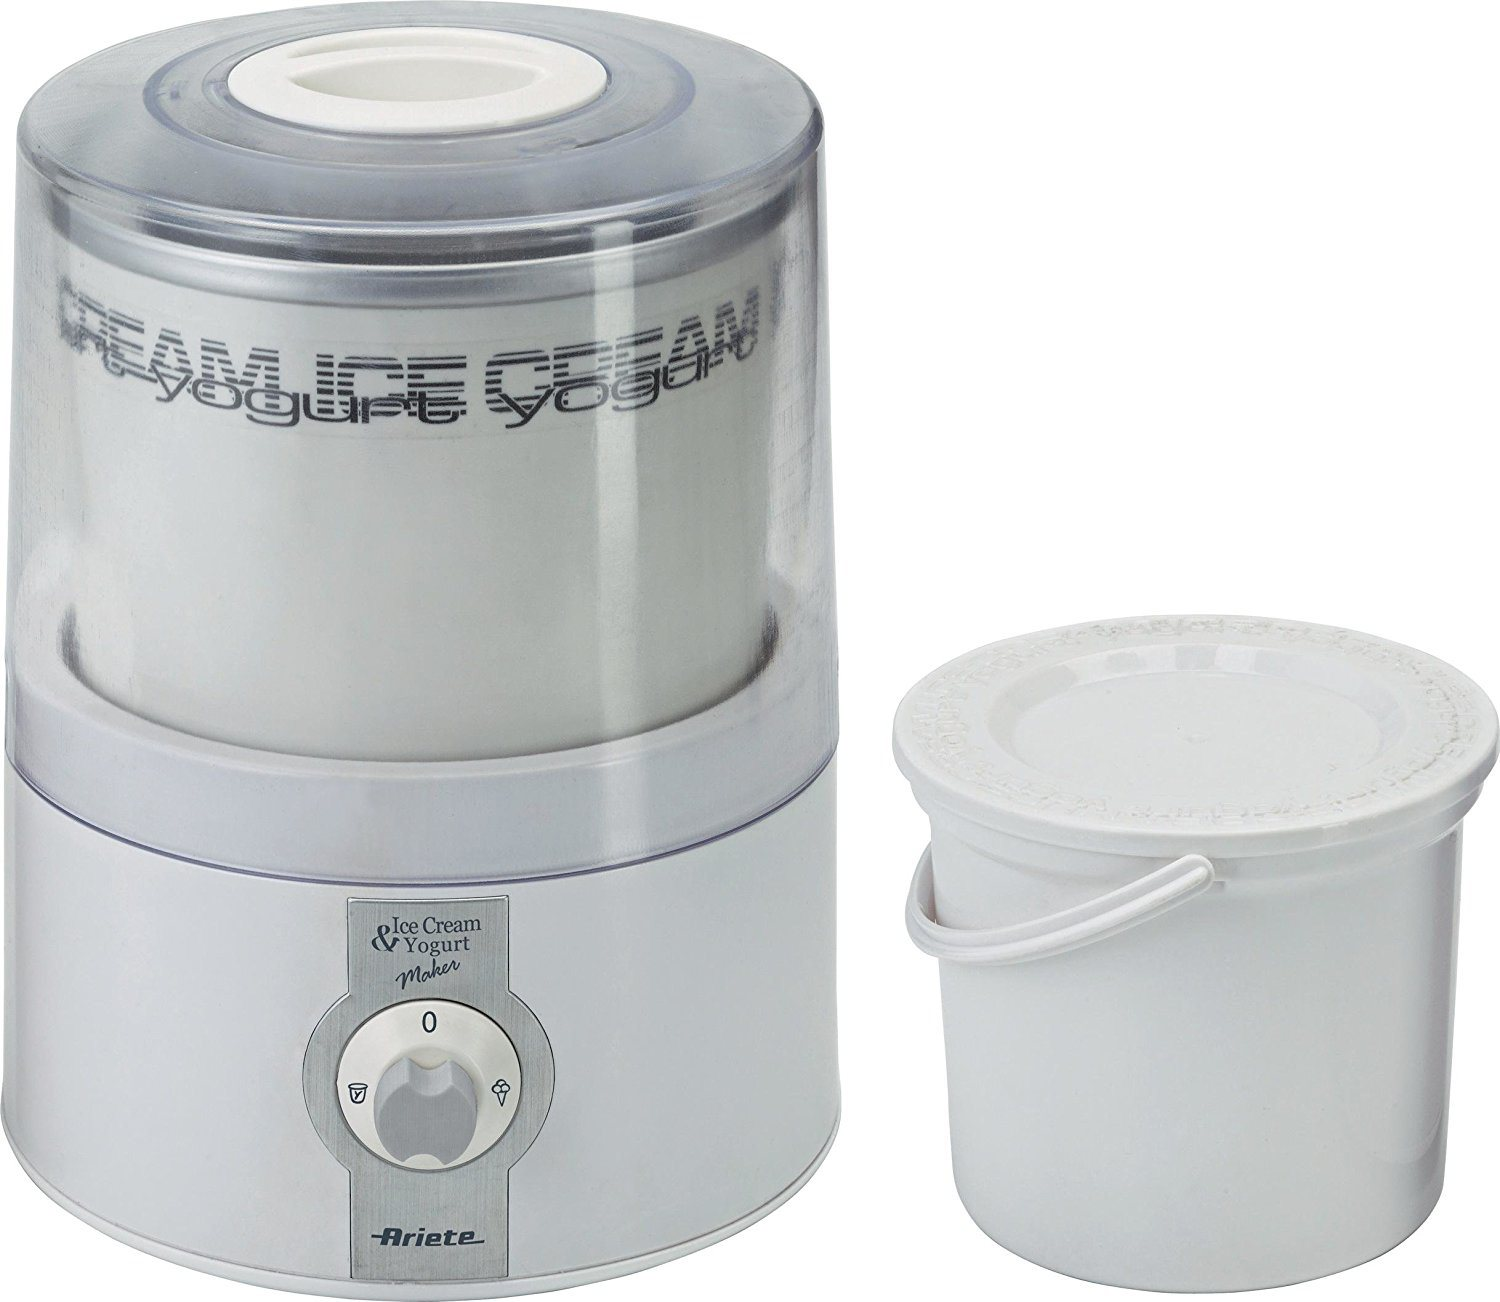 Ariete Macchina Gelato Yogurt Refrigerante 635 Ice cream & Yogurt maker